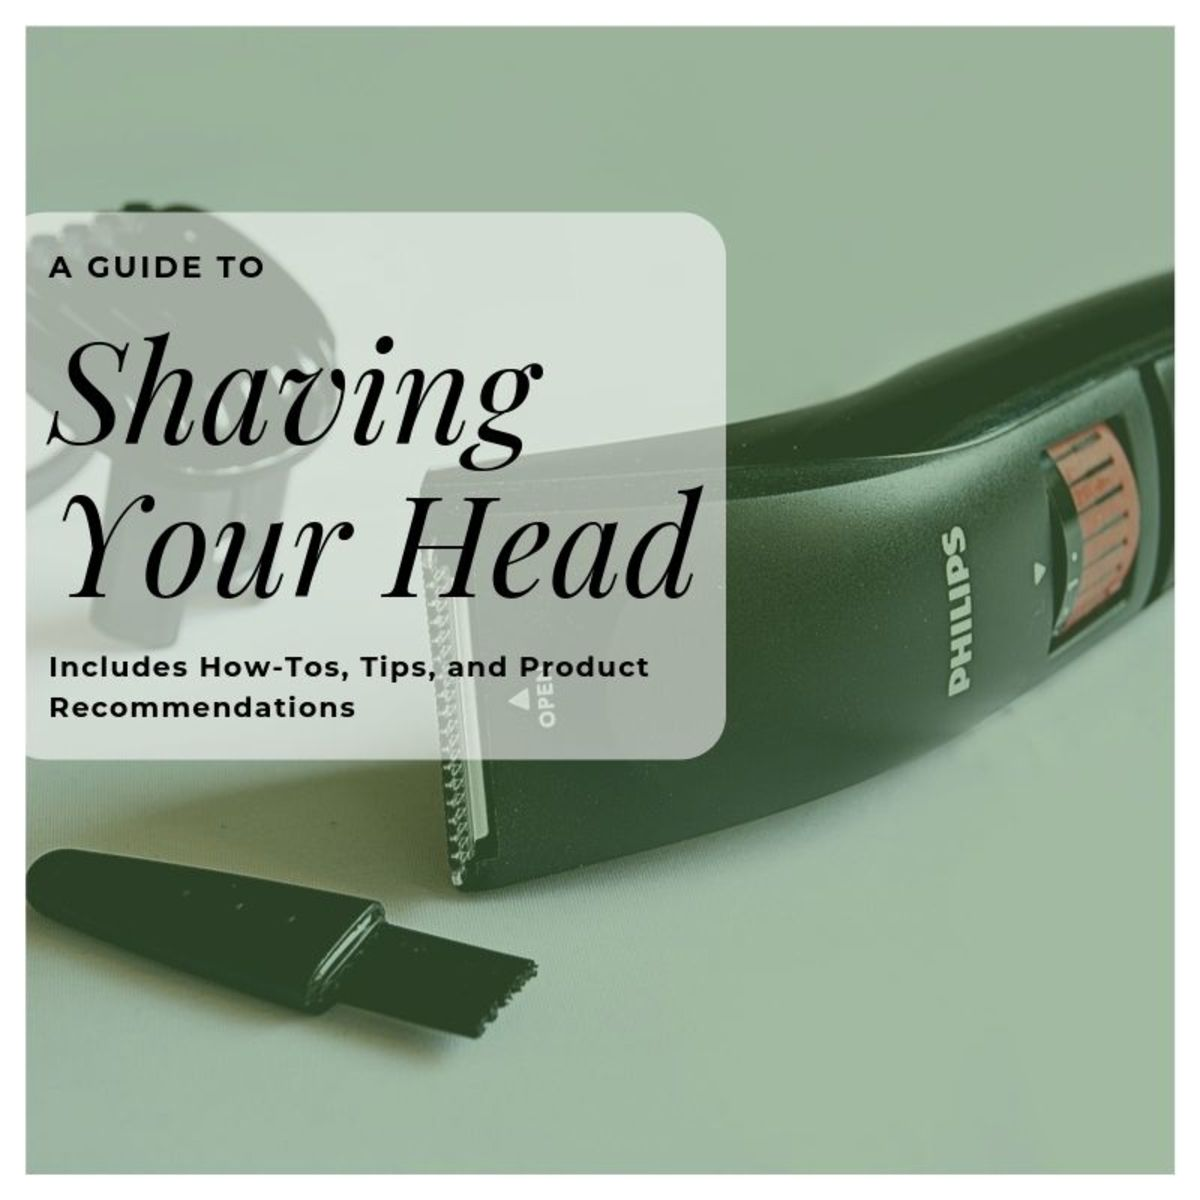 The ultimate guide to shaving your head.